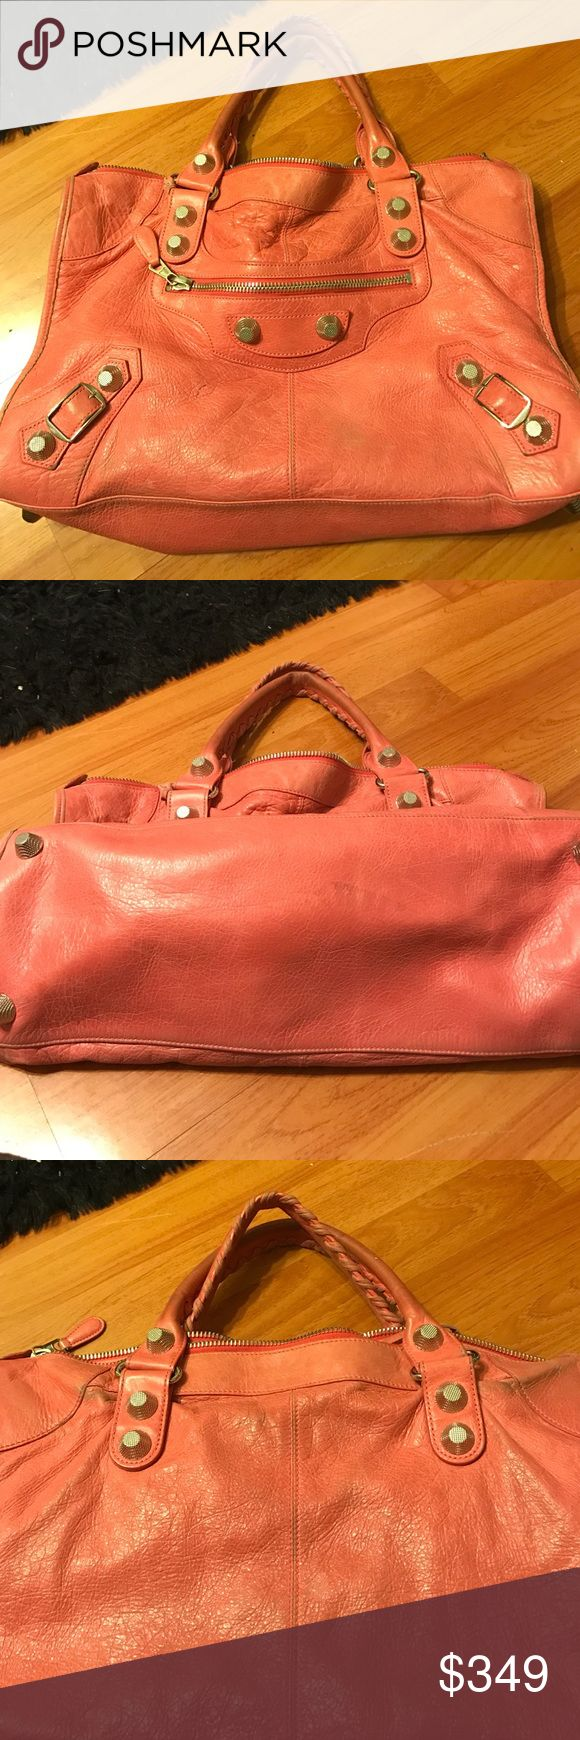 Balenciaga Motorcycle Bag Authentic Balenciaga Motorcycle Bag in salmon pink color. Great bag and holds a lot of stuff. Has a few stains and the handles are worn (pictures uploaded of this). Steal at this price! Balenciaga Bags Totes